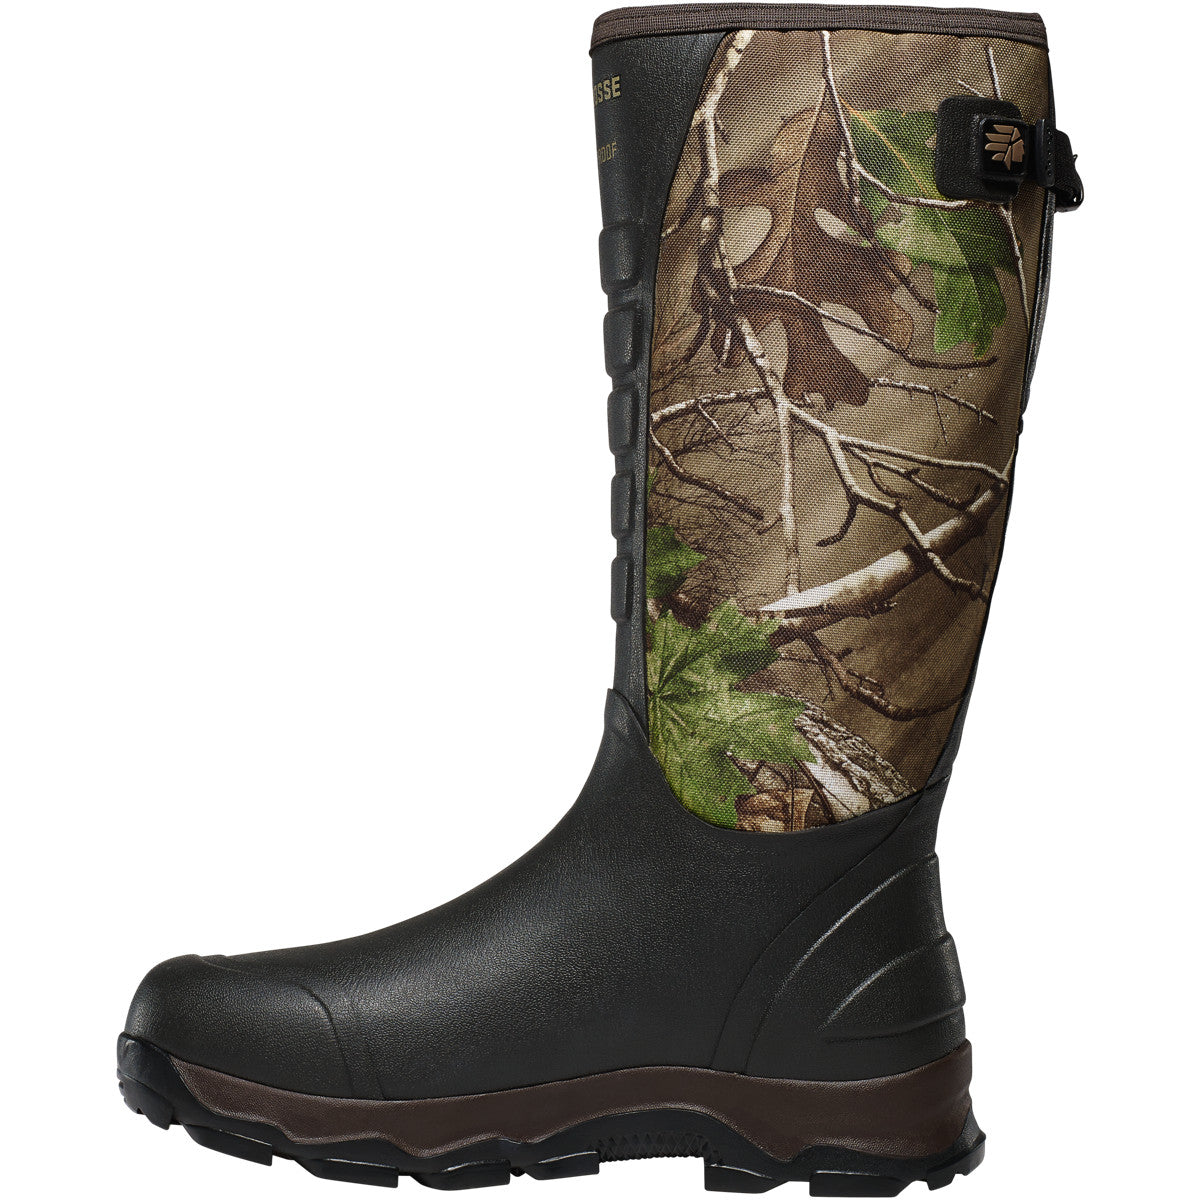 d8c87b335ee LaCrosse 4X Alpha Snake Boots - Realtree Extra Green